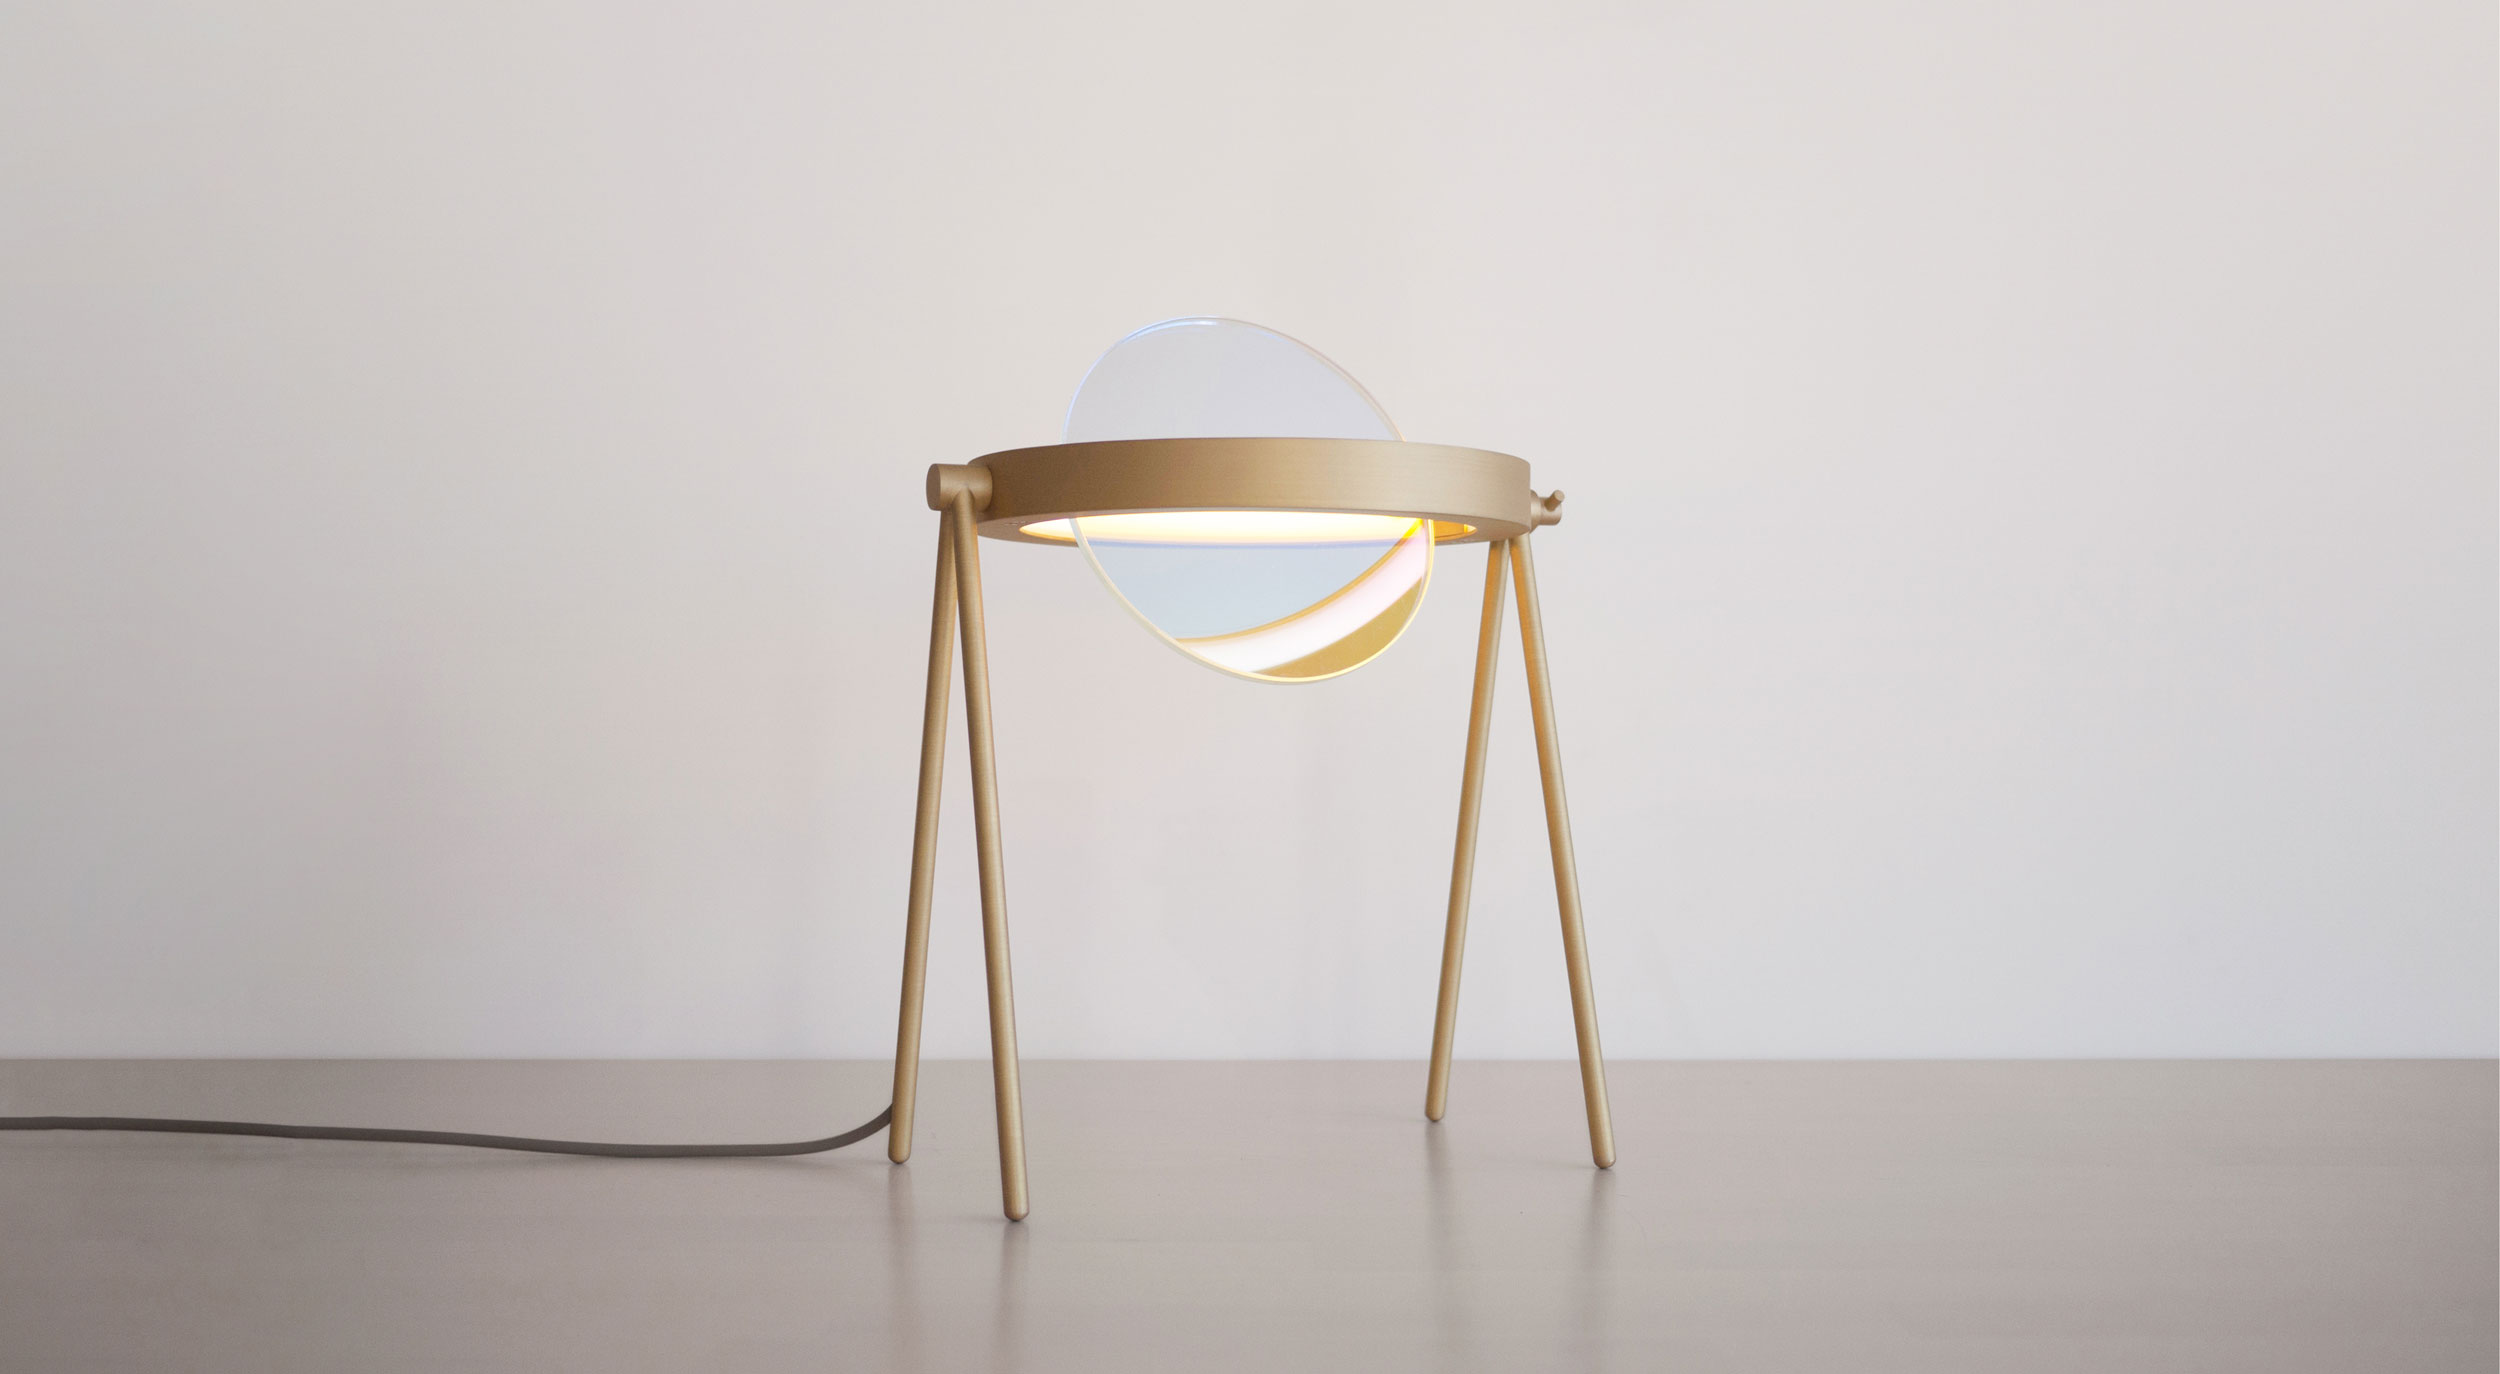 Janus Table by Trueing